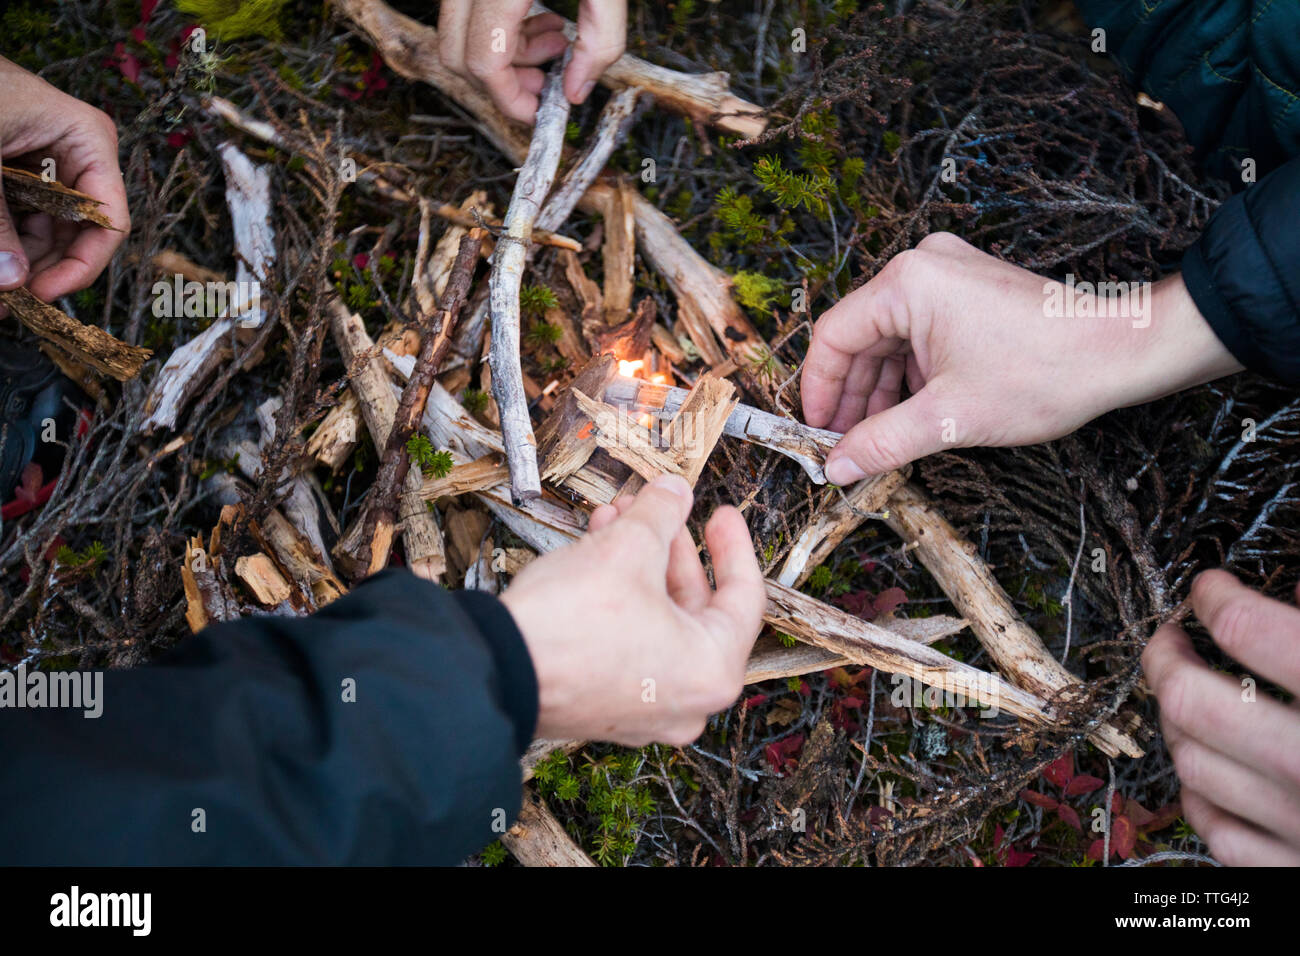 Many hands work to light a fire outdoors. Stock Photo